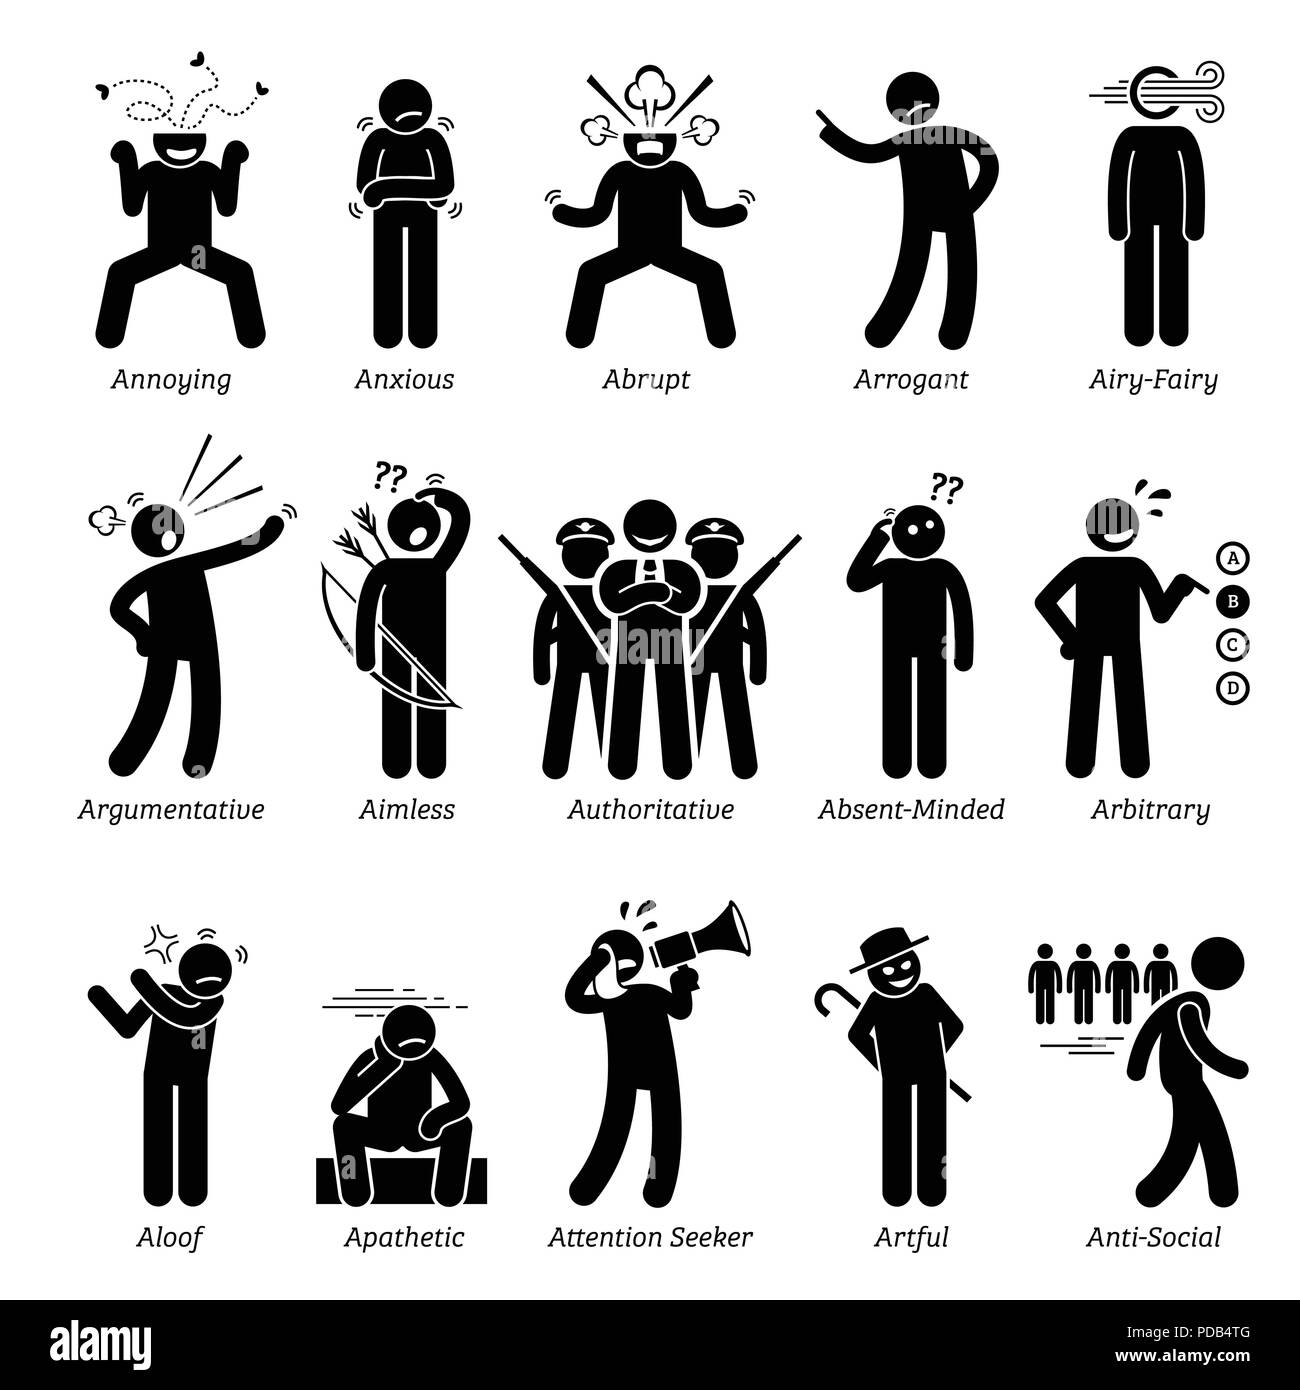 Negative Bad Personalities Character Traits. Stick Figures Man Icons. Starting with the Alphabet A. - Stock Vector